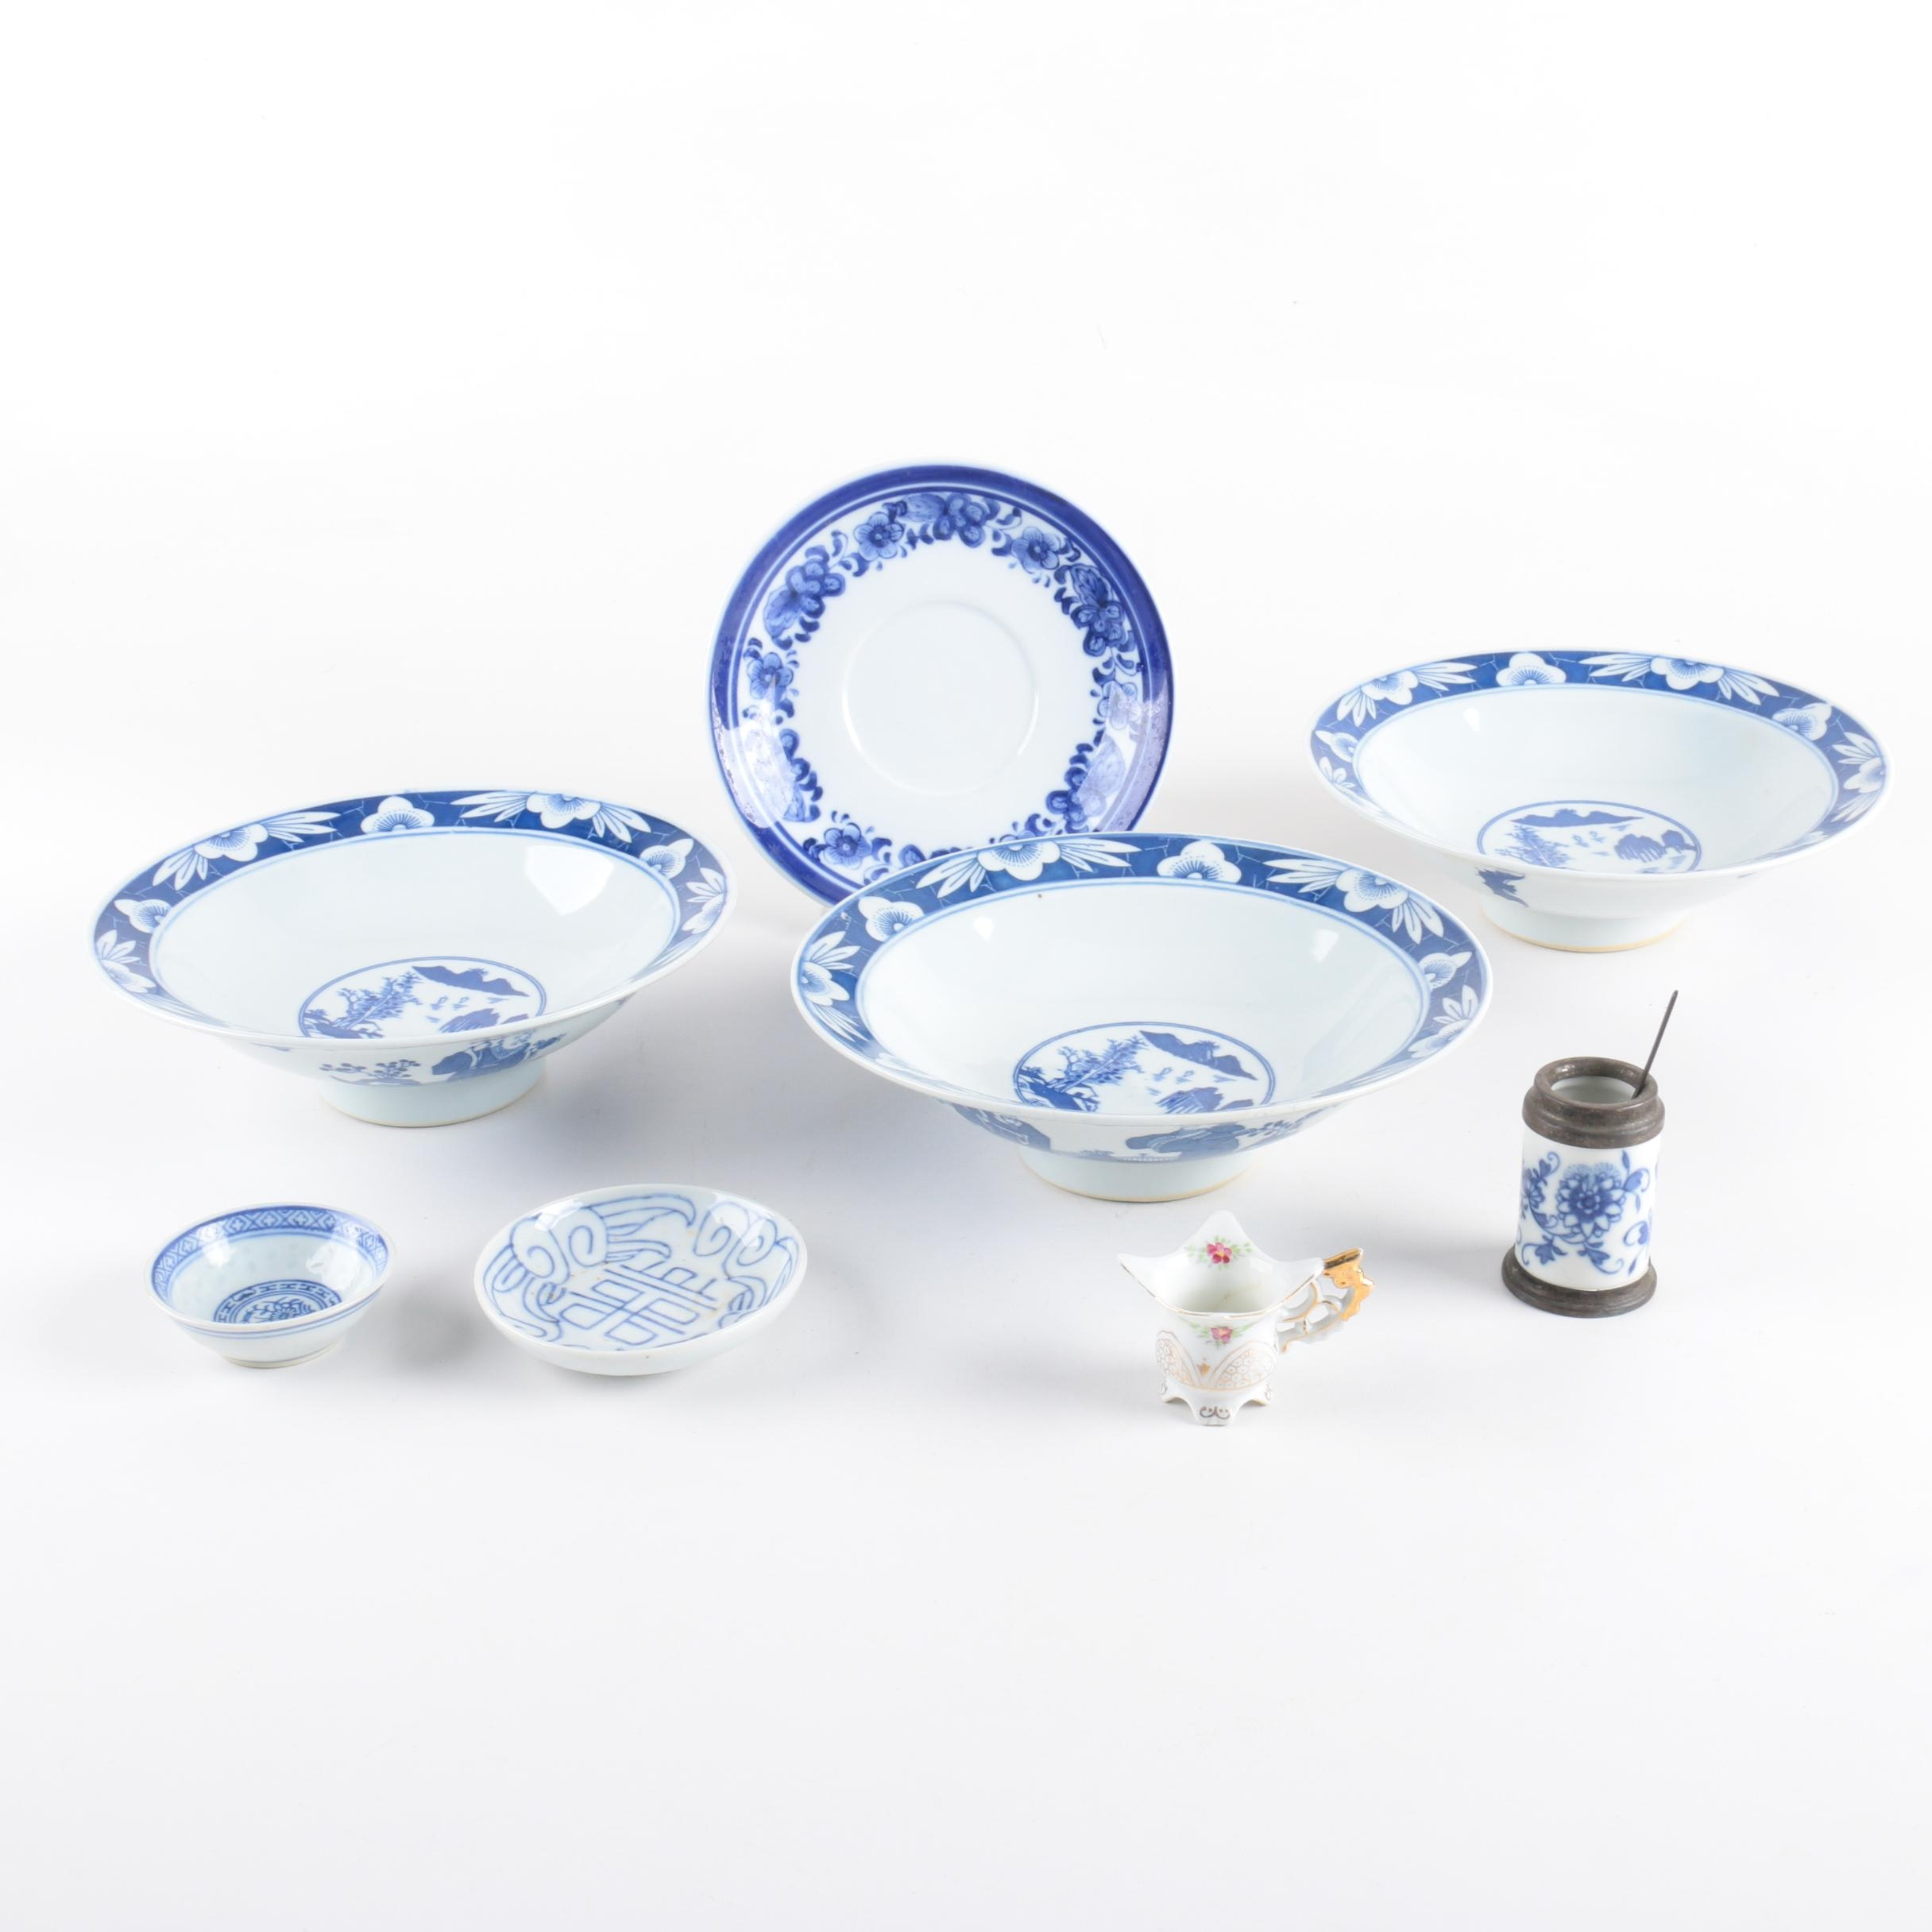 Chinese Porcelain Tableware